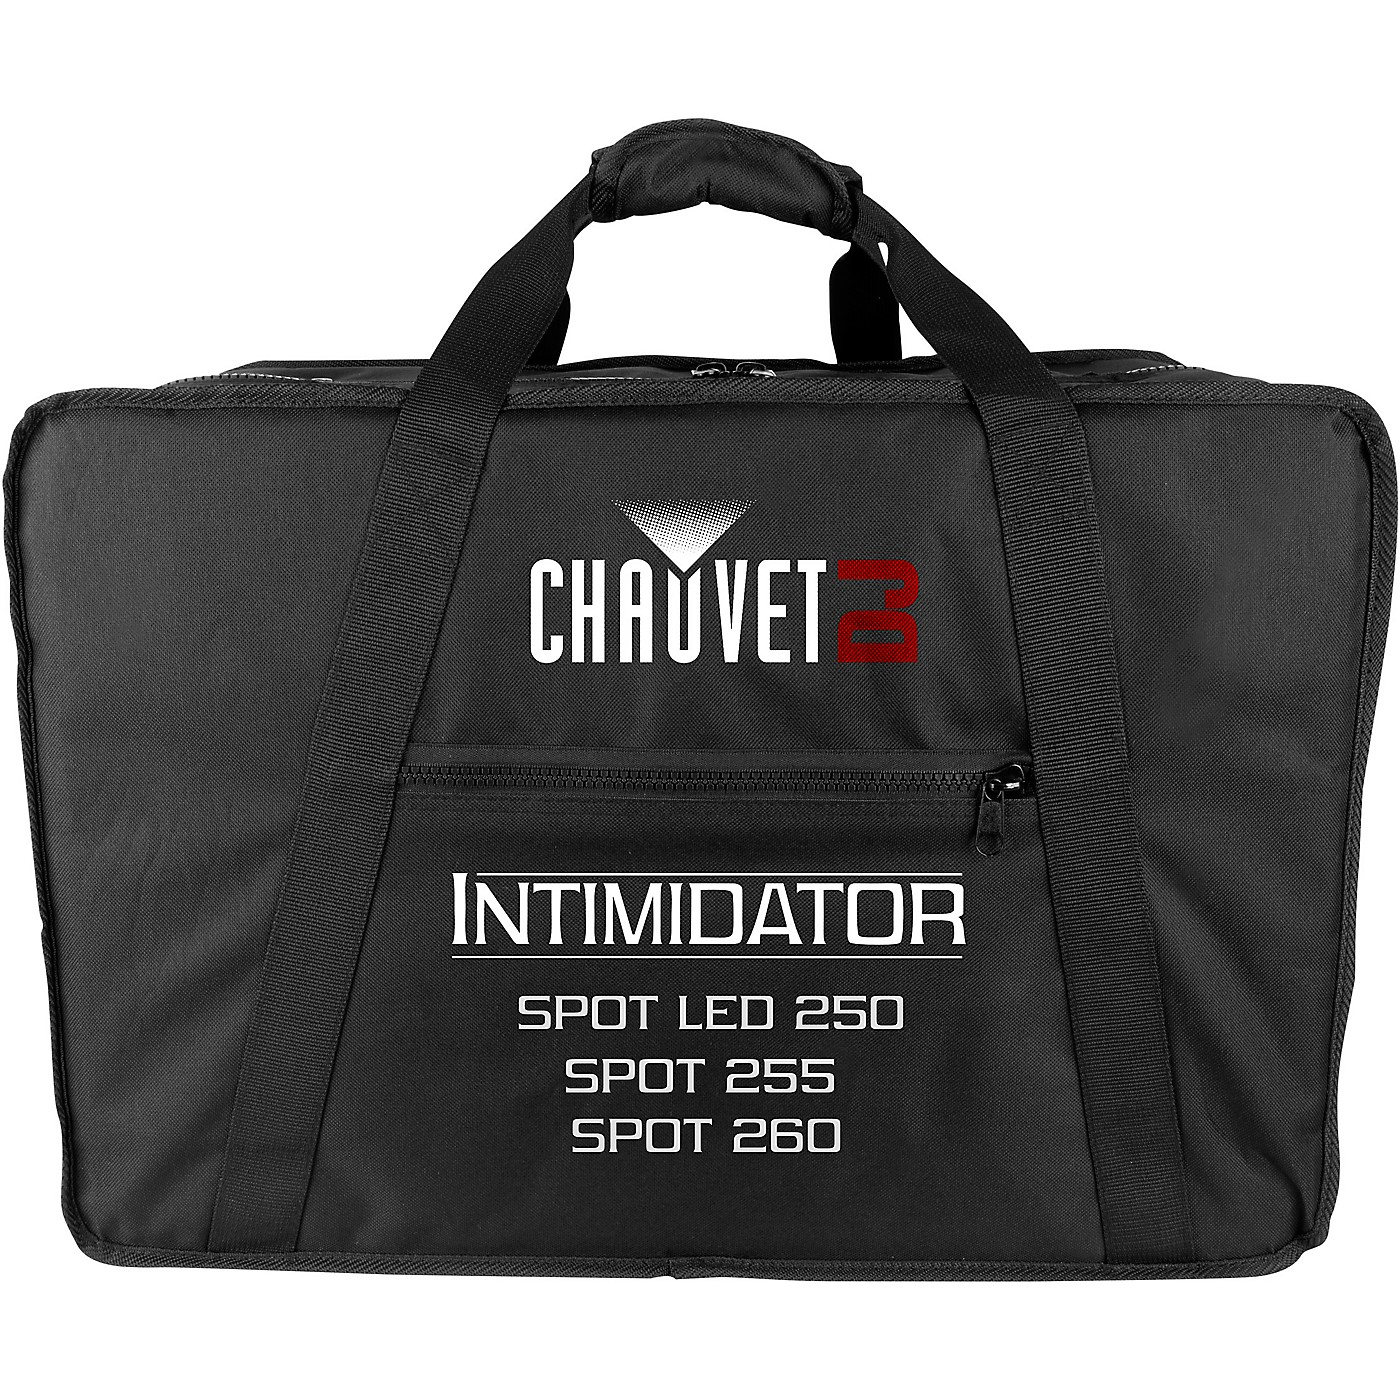 CHAUVET DJ CHS-2XX Carry Bag for Intimidator Spot 255 or 260 IRC thumbnail